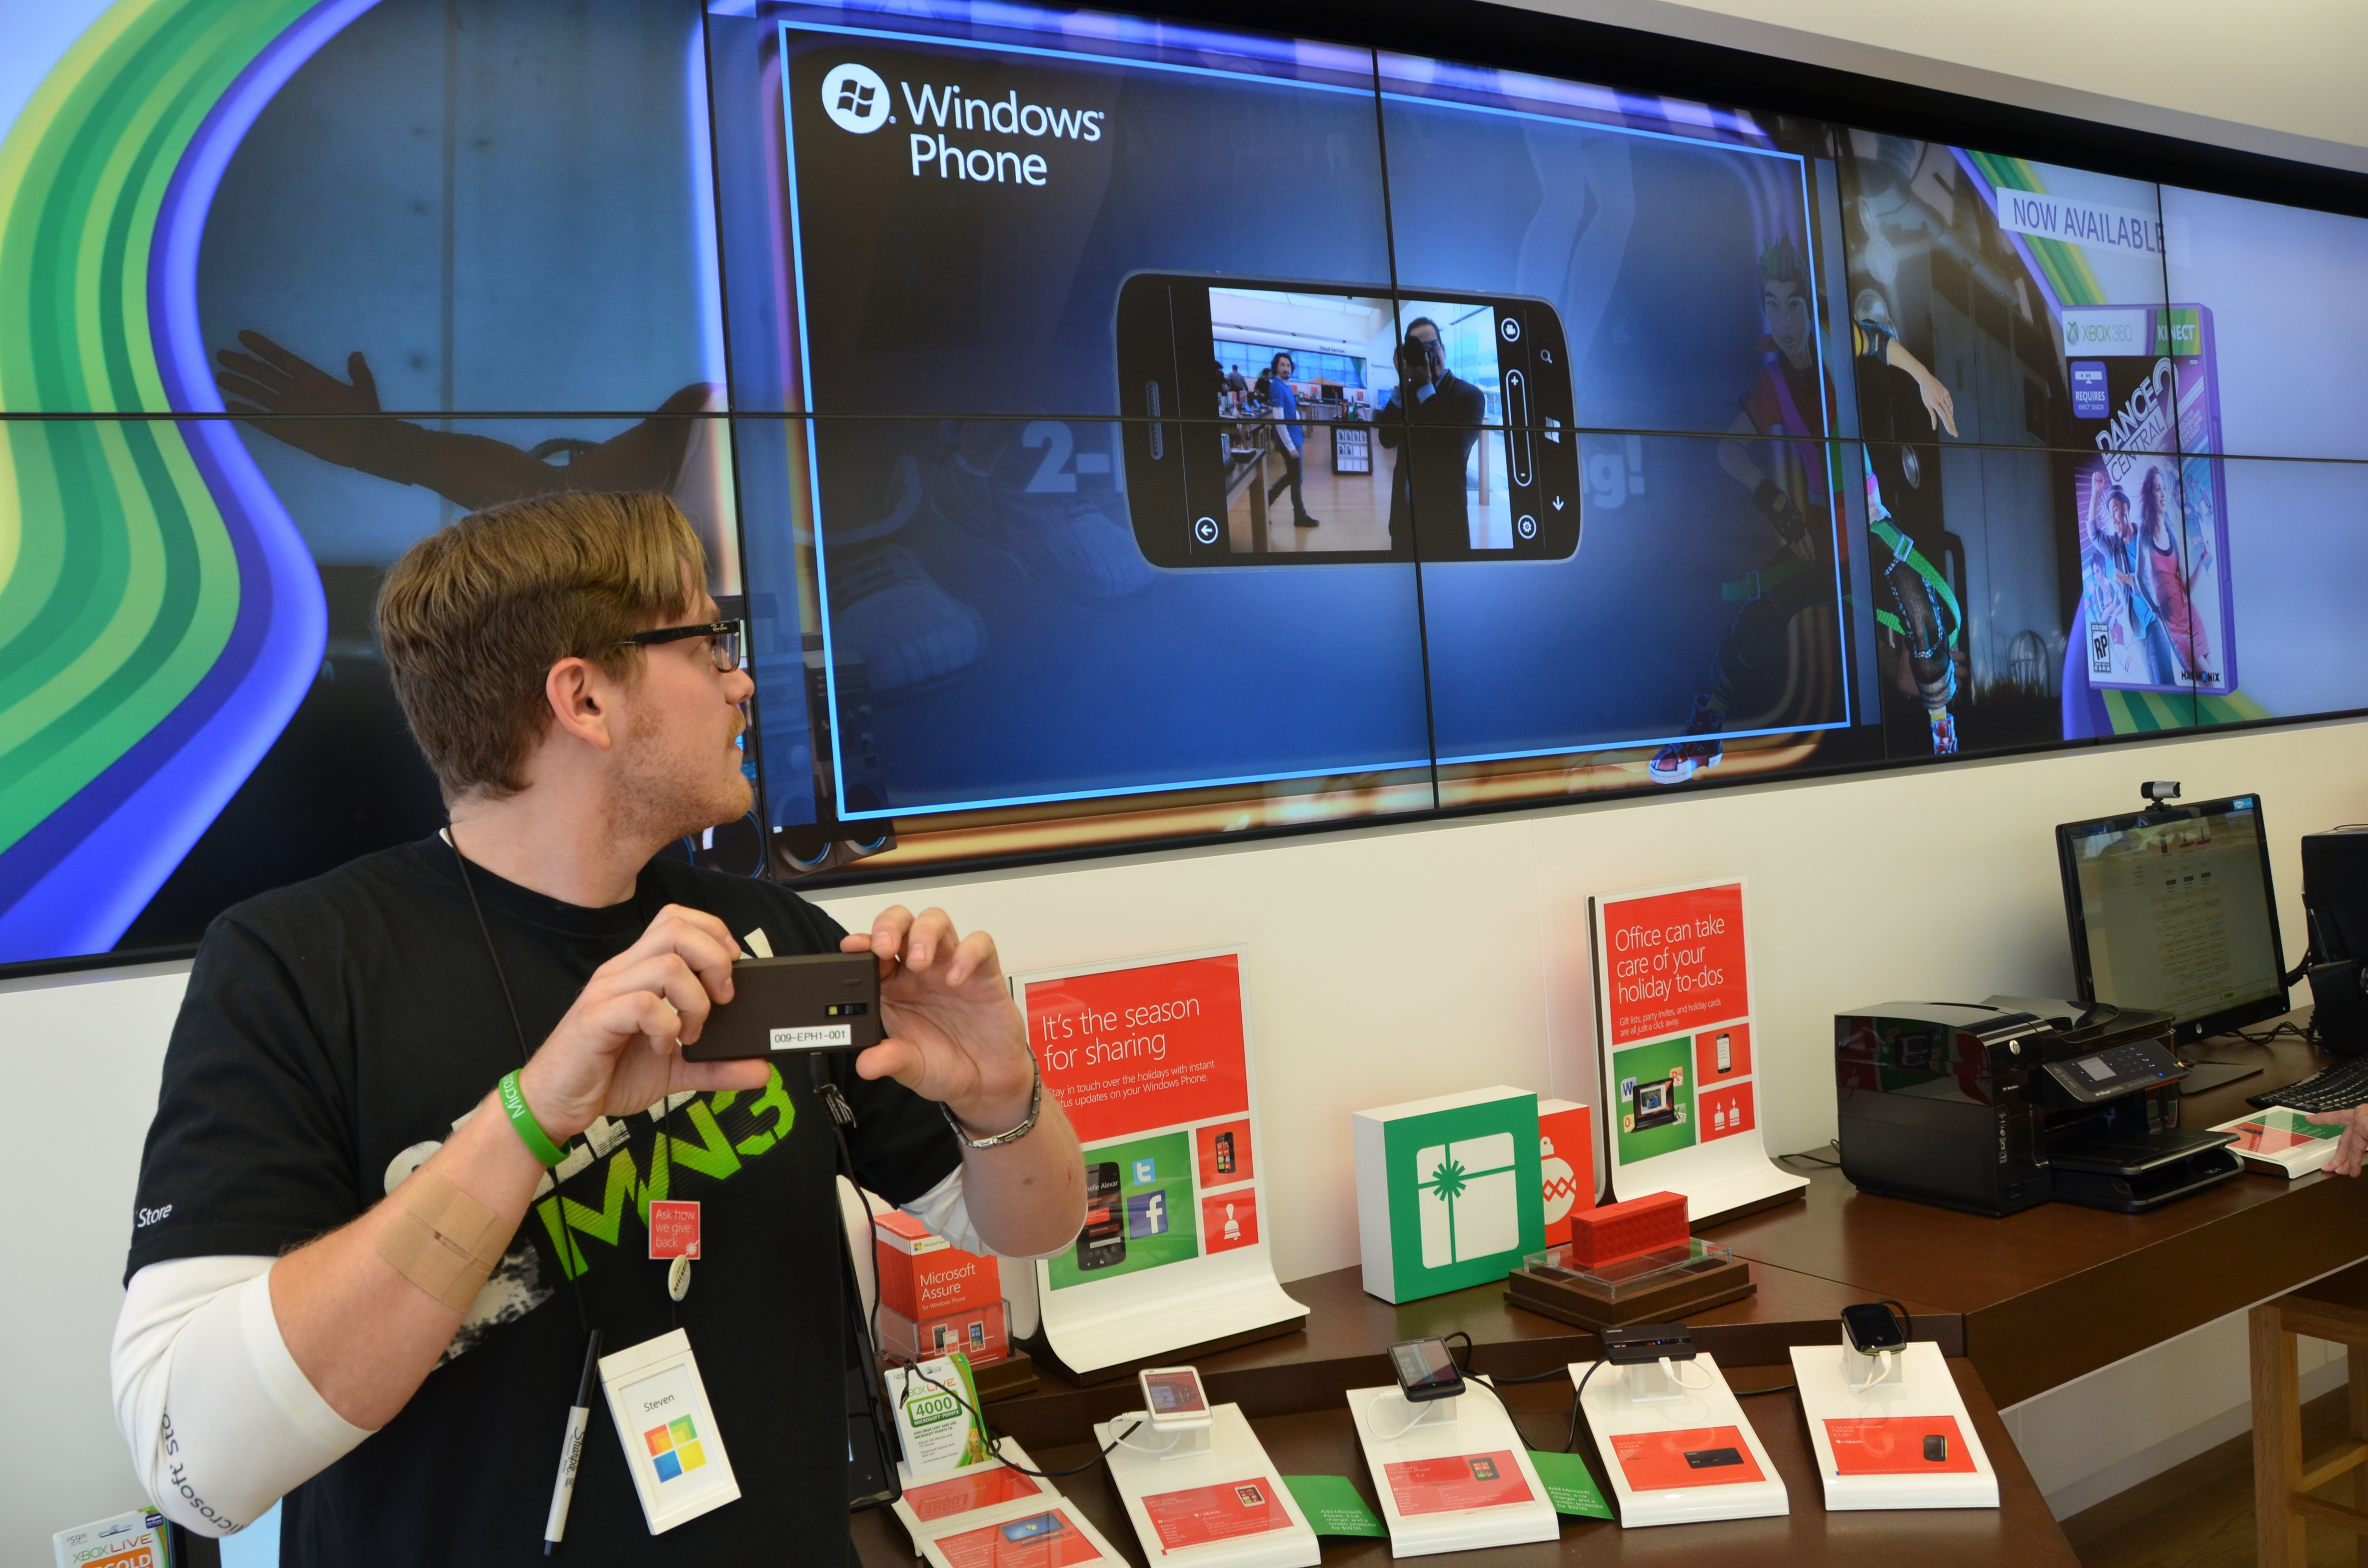 Microsoft is proud of the video screens